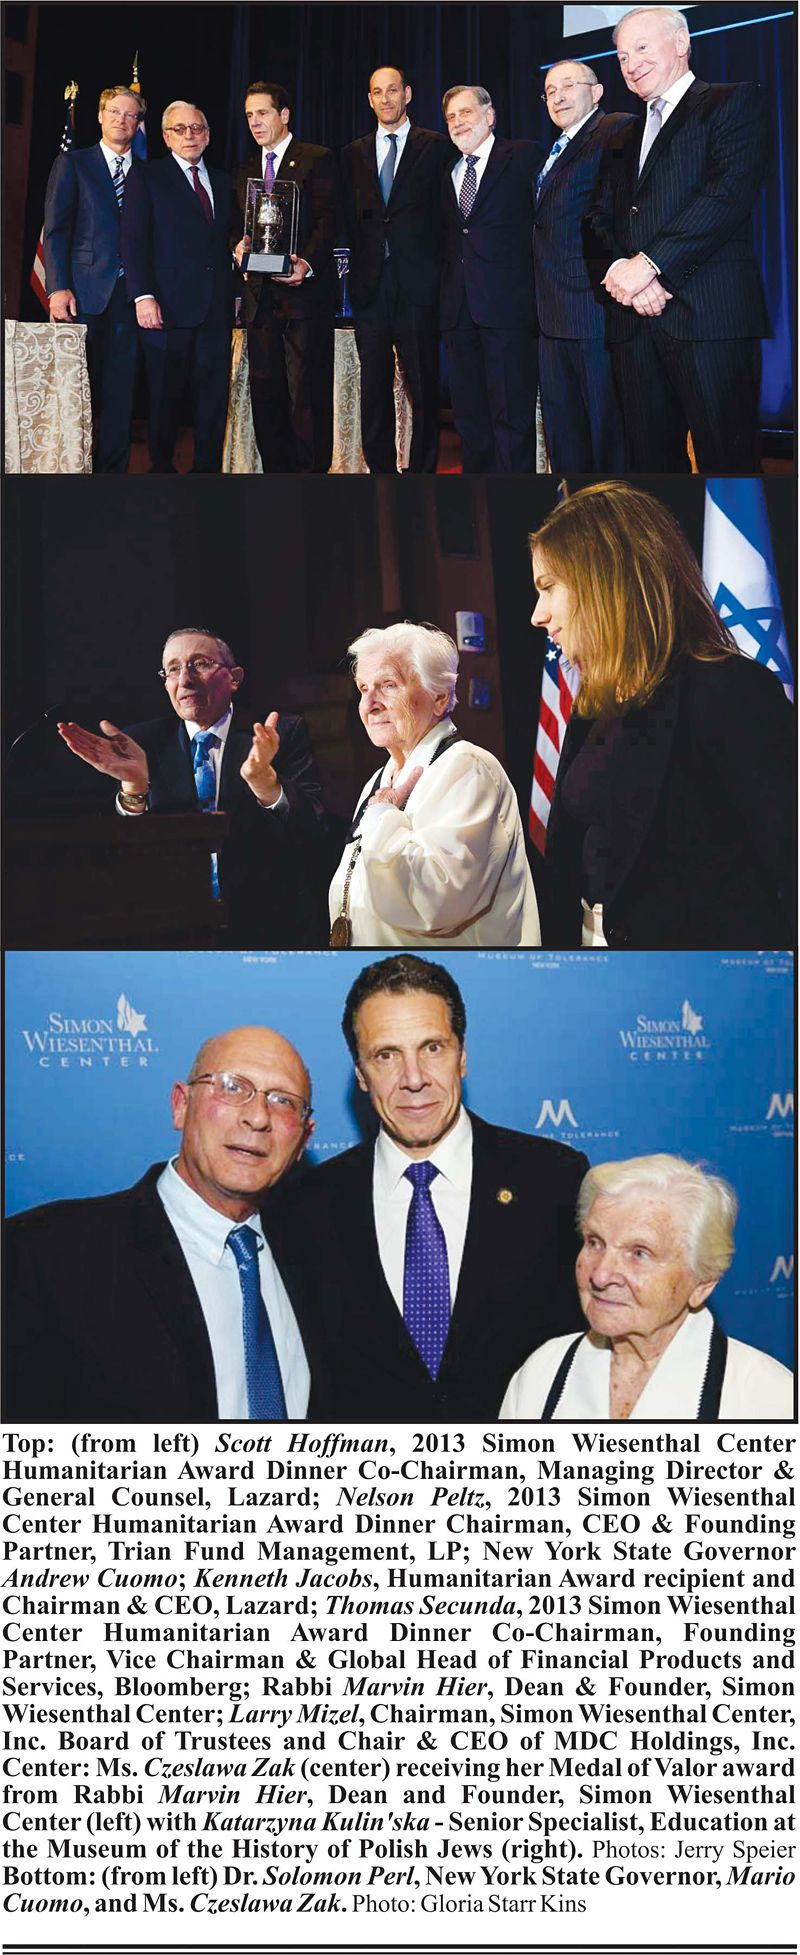 Simon Wiesenthal Center Honors NYS Gov. Mario Cuomo, Kenneth Jacobs, Czeslawa Zak and William Perl